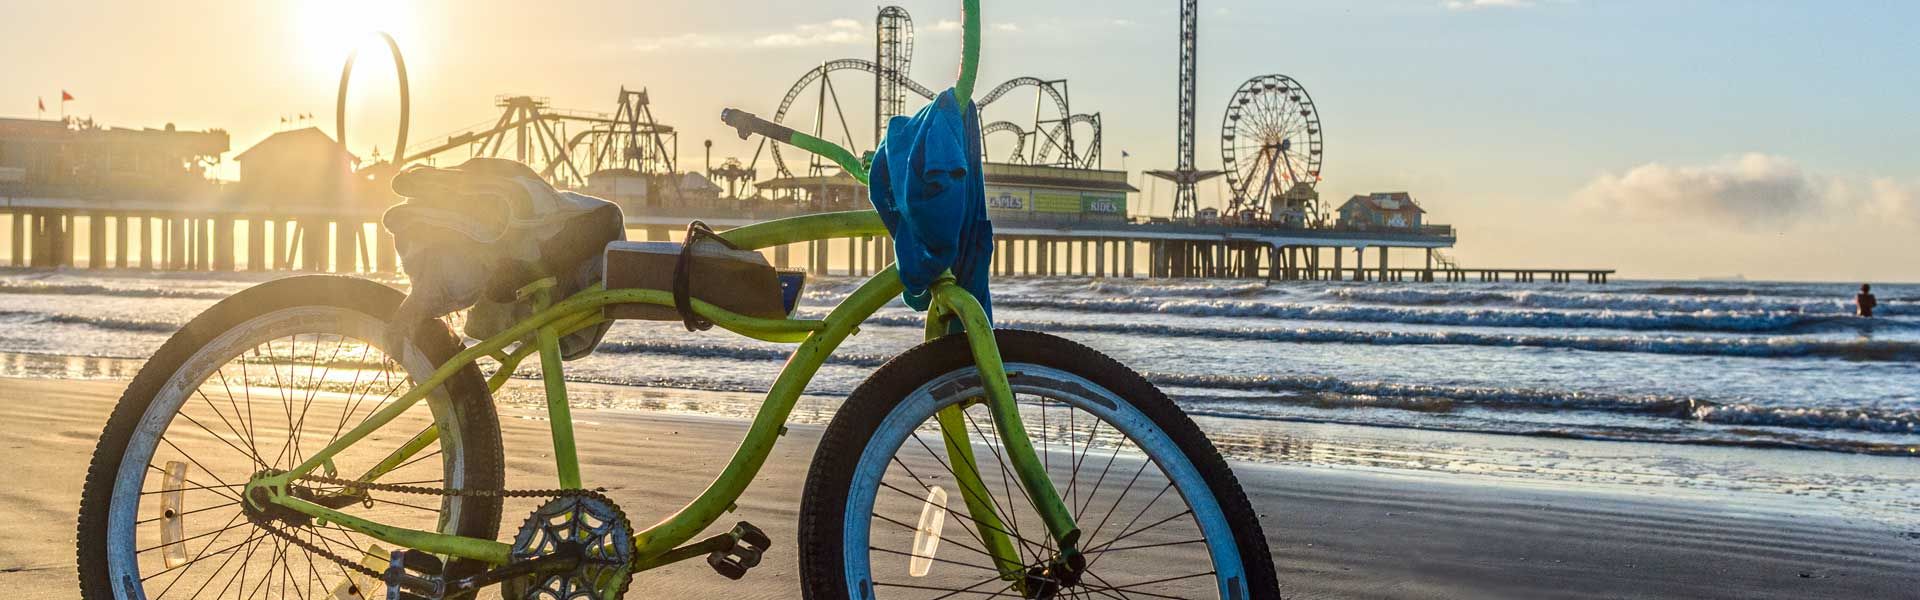 Bicycle Near the Pleasure Pier, Galveston, TX